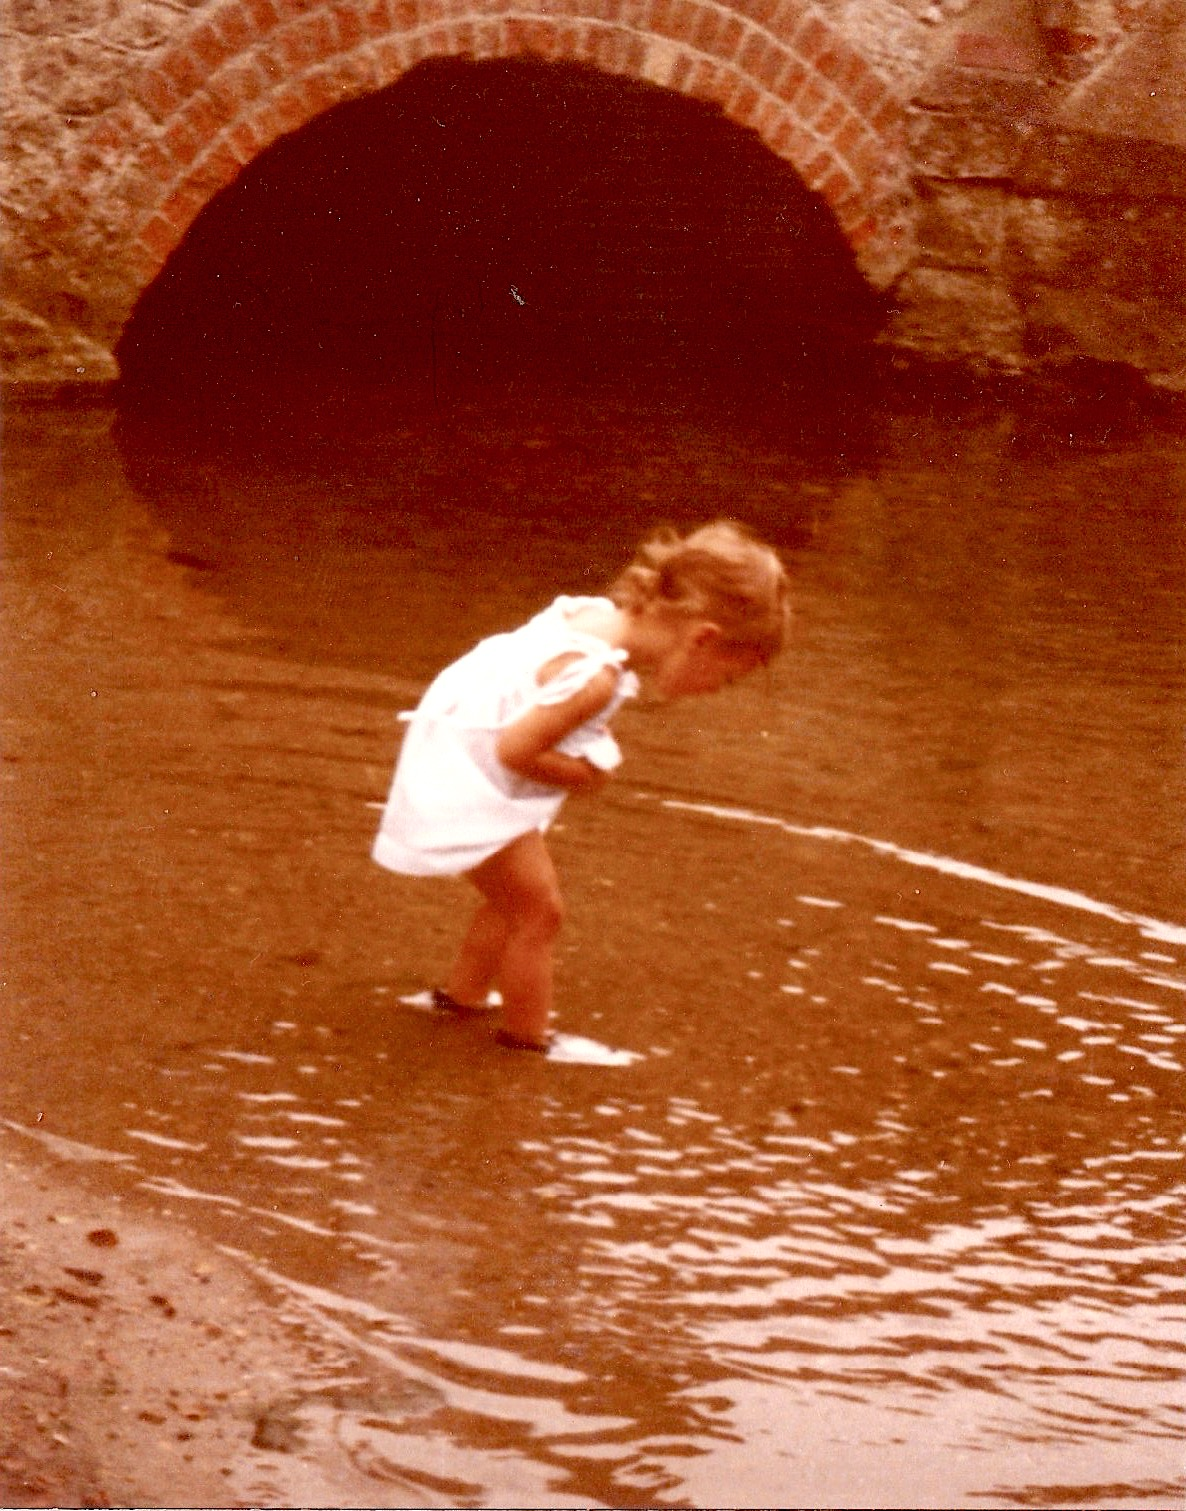 Chloe Fitzgerald, aged 3, at play in the River Mel